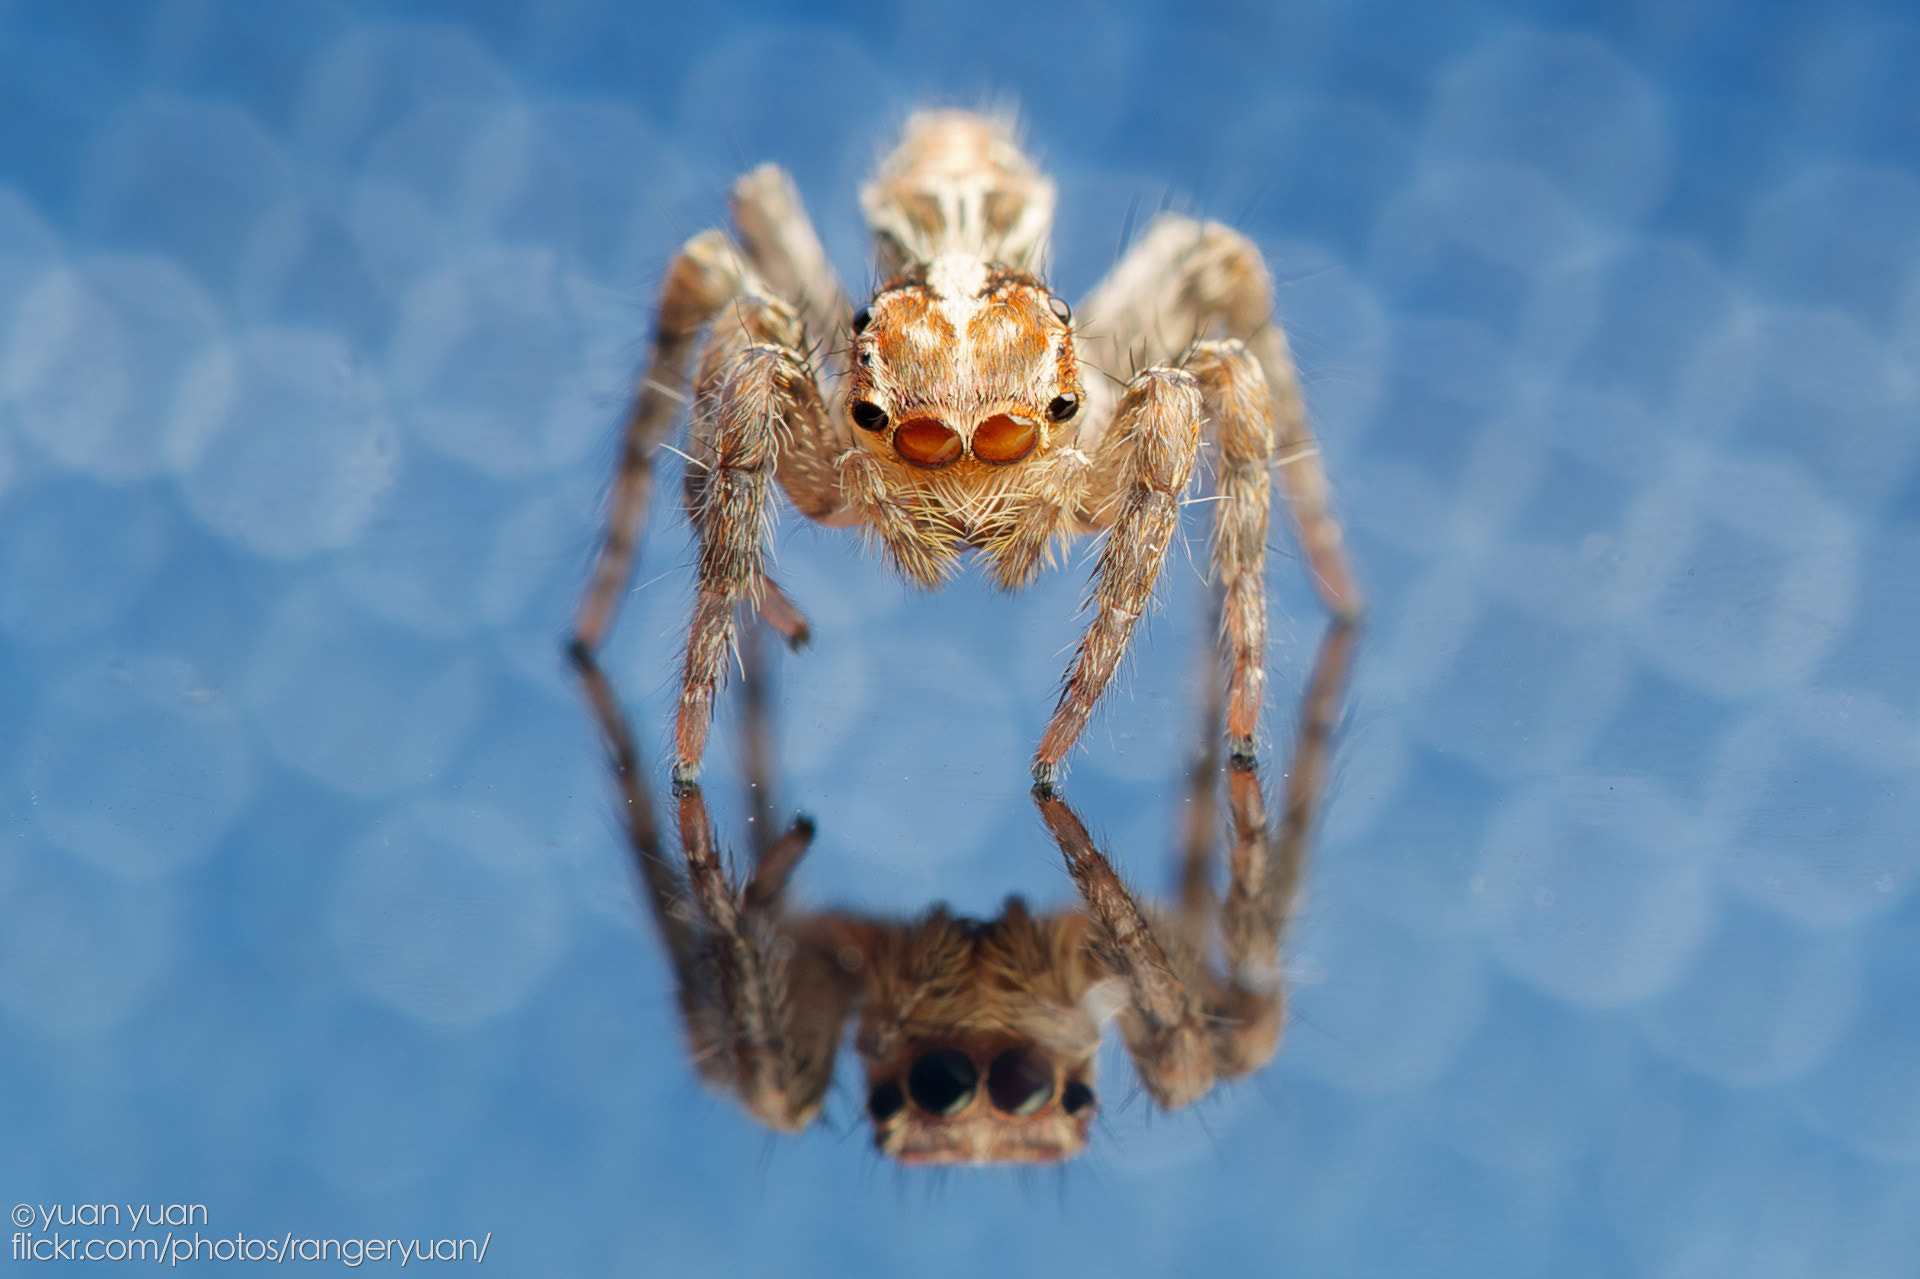 Photograph spider in table by yuan yuan on 500px